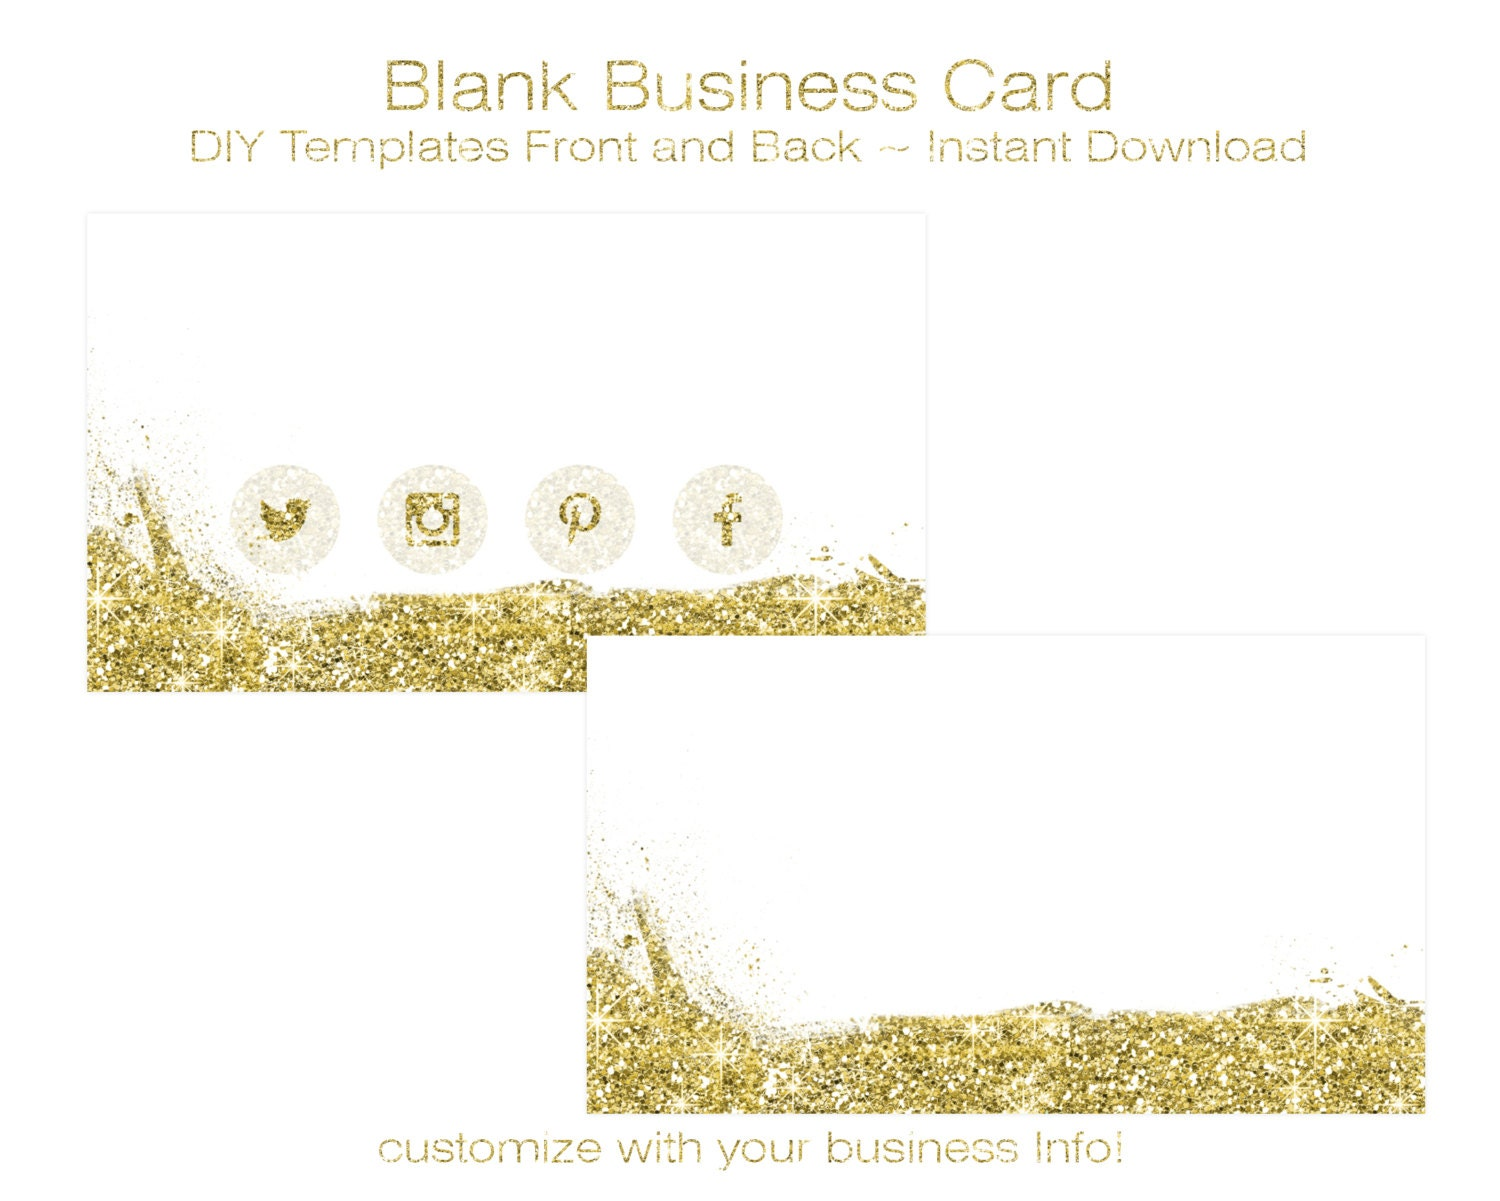 BUSINESS CARD Template - DIY Blank Business Card Standard Size ...